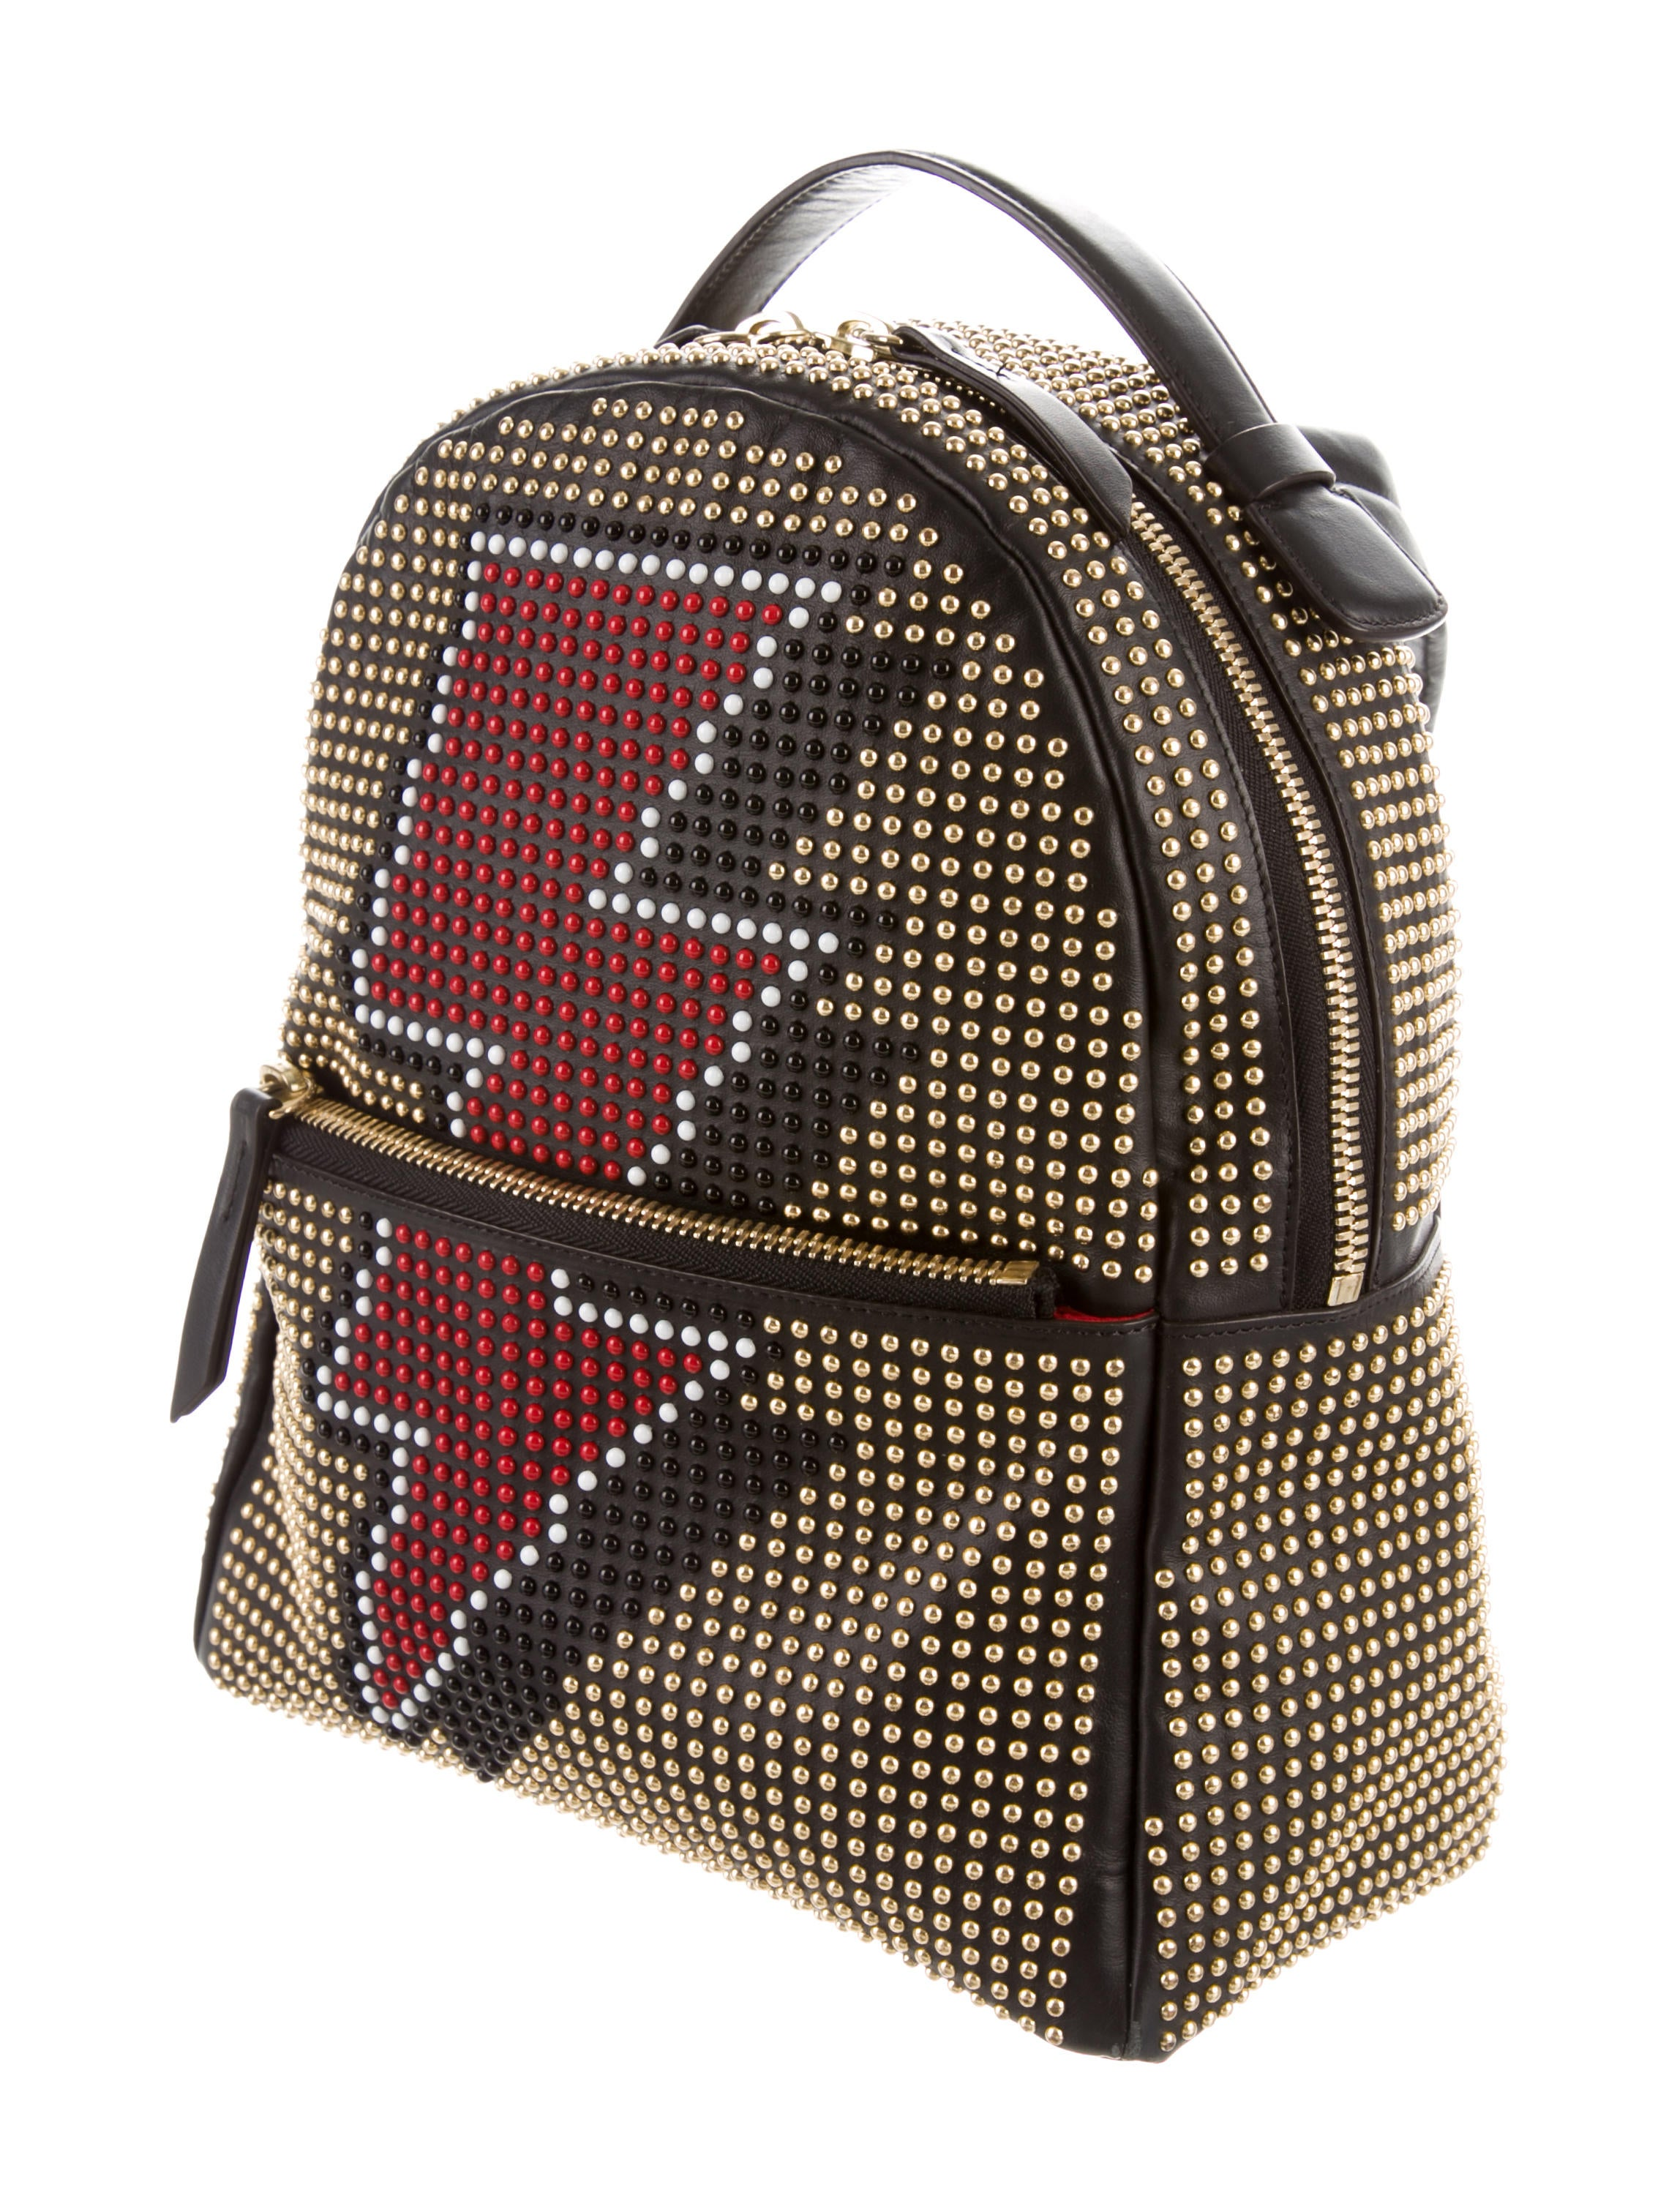 8becd4d6b09 Leather Spiked Backpack- Fenix Toulouse Handball